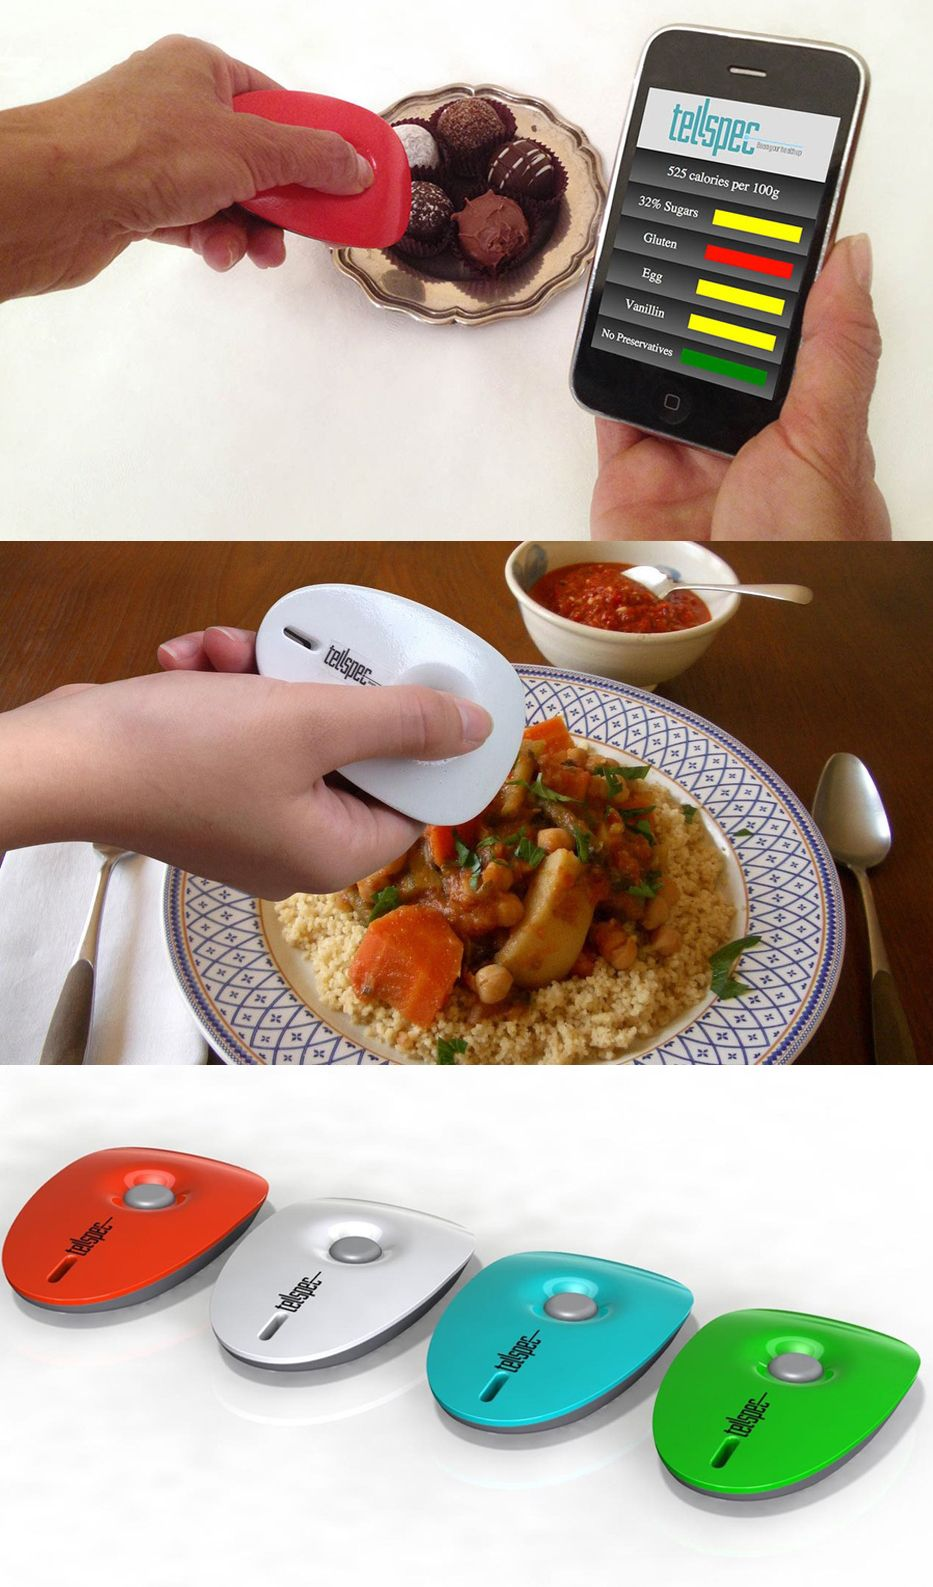 Smaller Than Your Phone This Device Could Keep You Healthy Outils De Cuisine Gadgets Et Gadget Utile